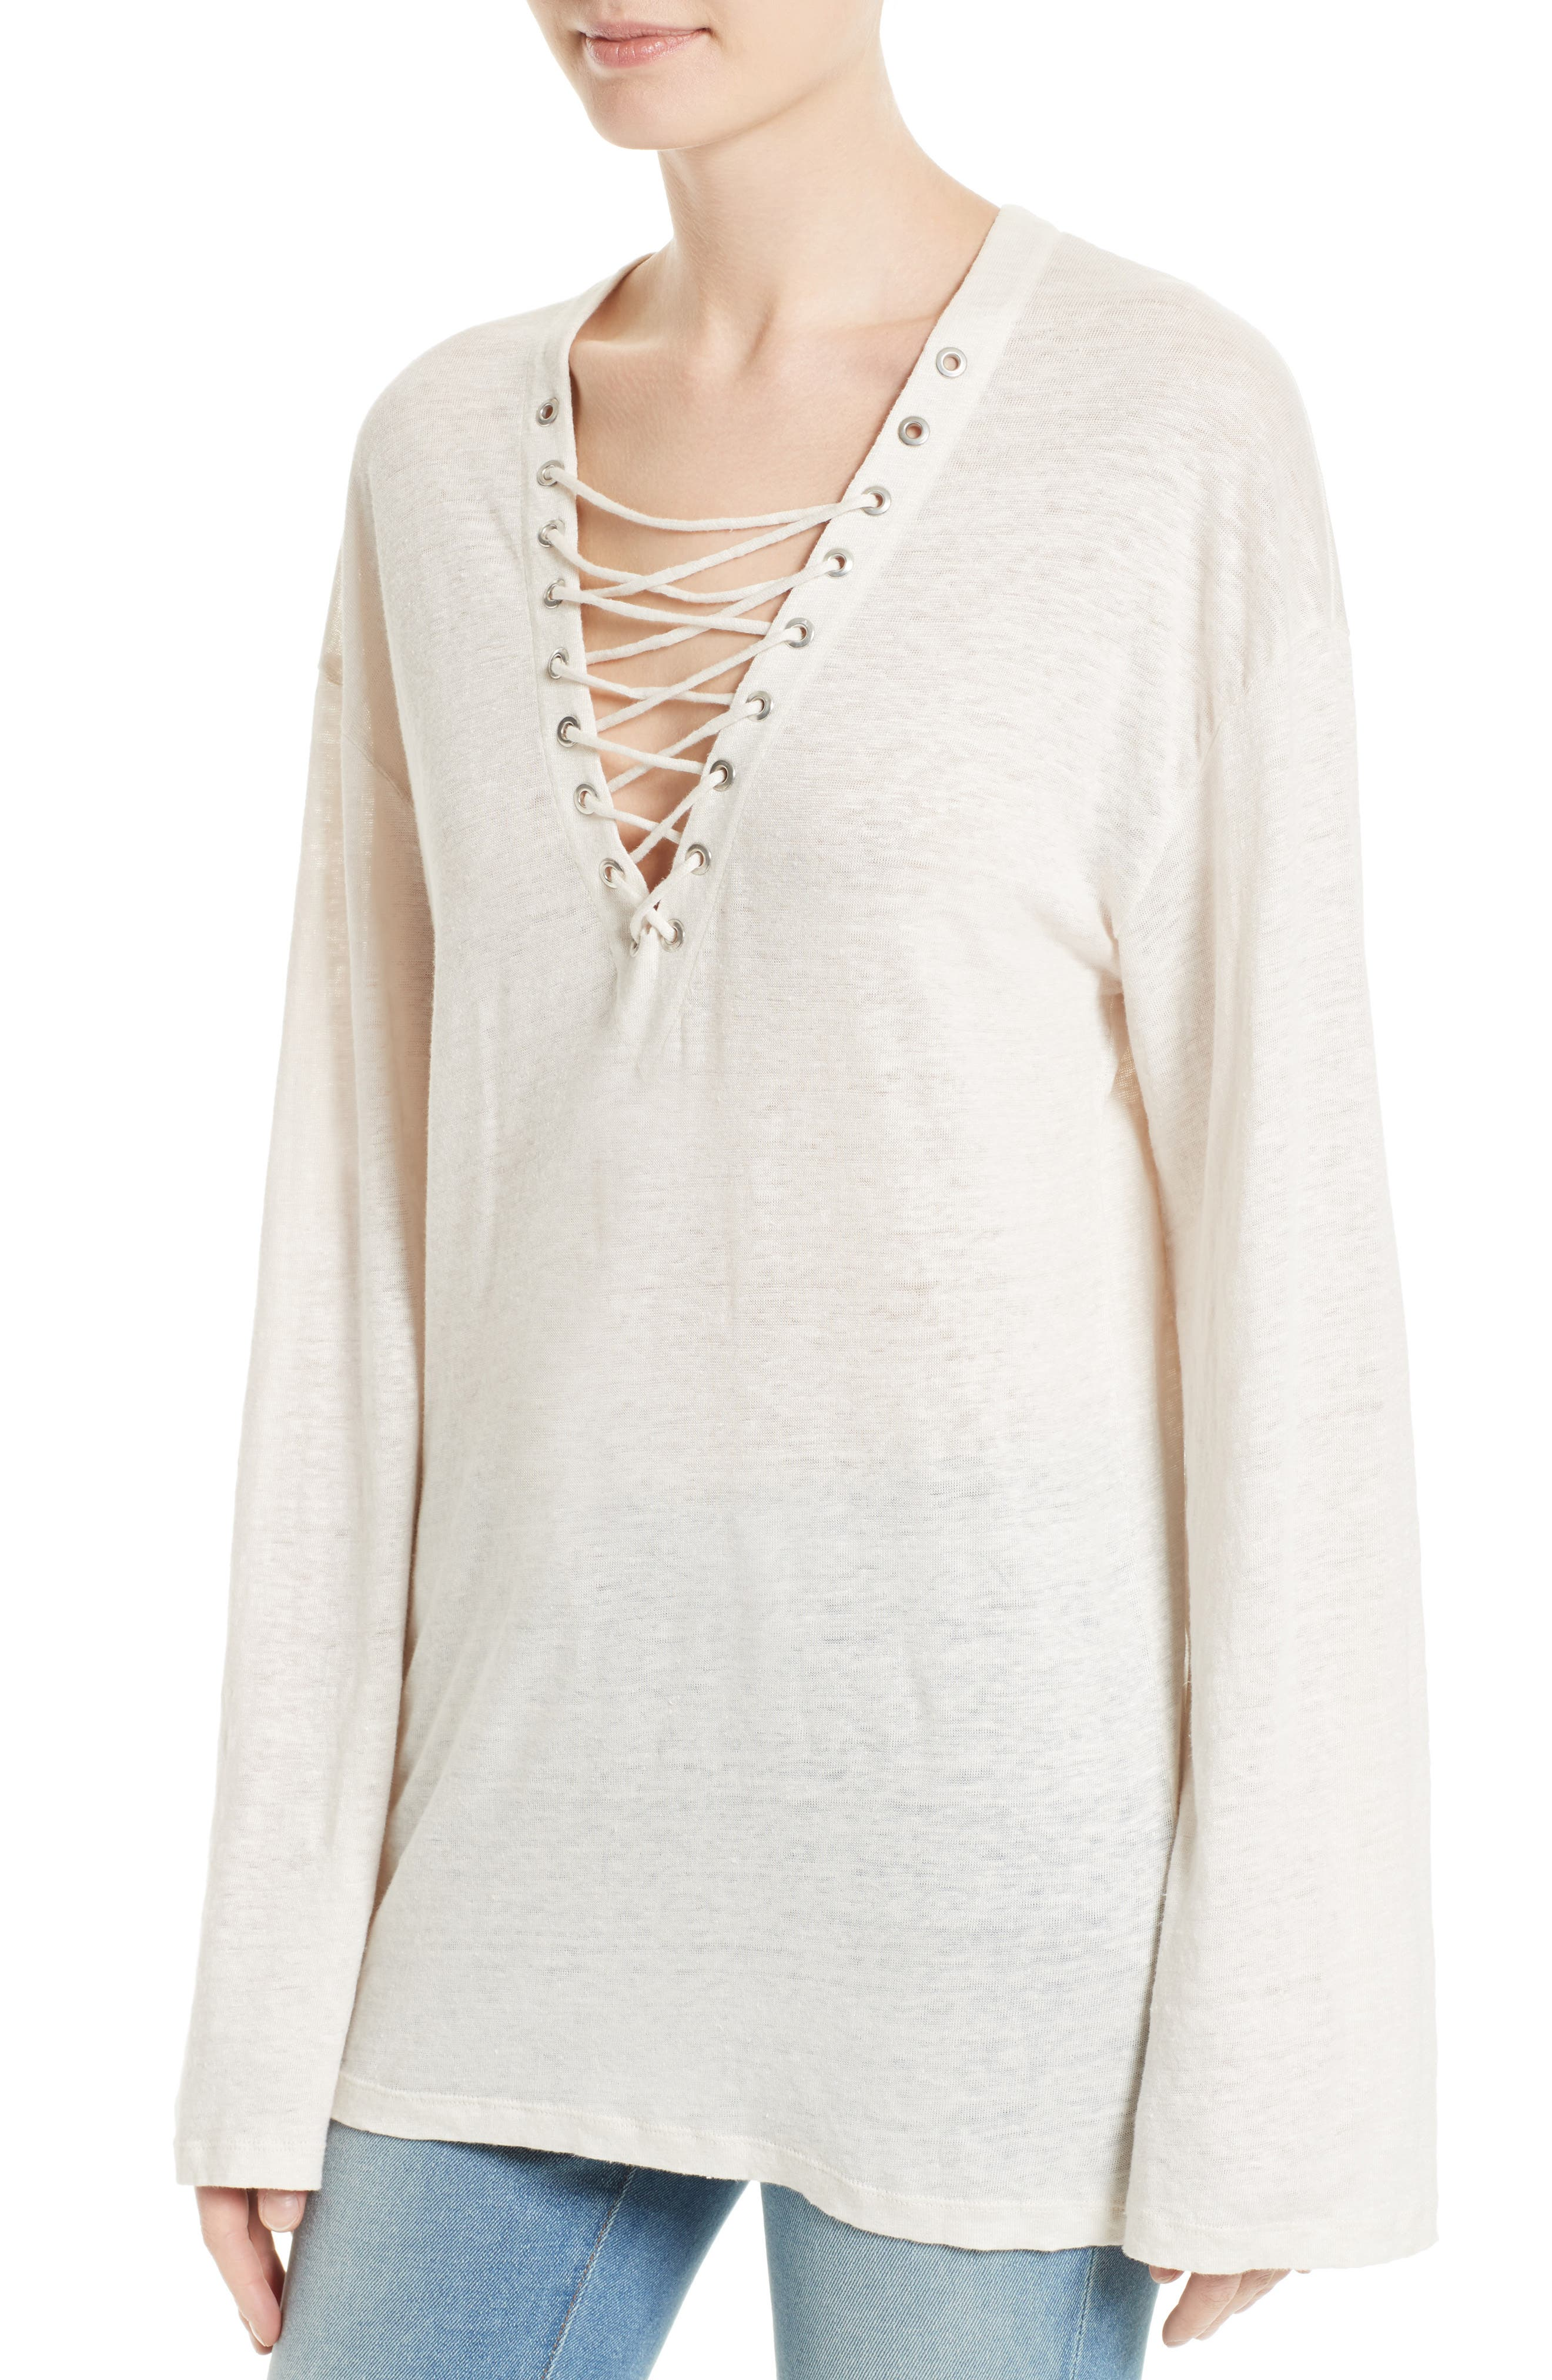 Alety Lace-Up Linen Top,                             Alternate thumbnail 4, color,